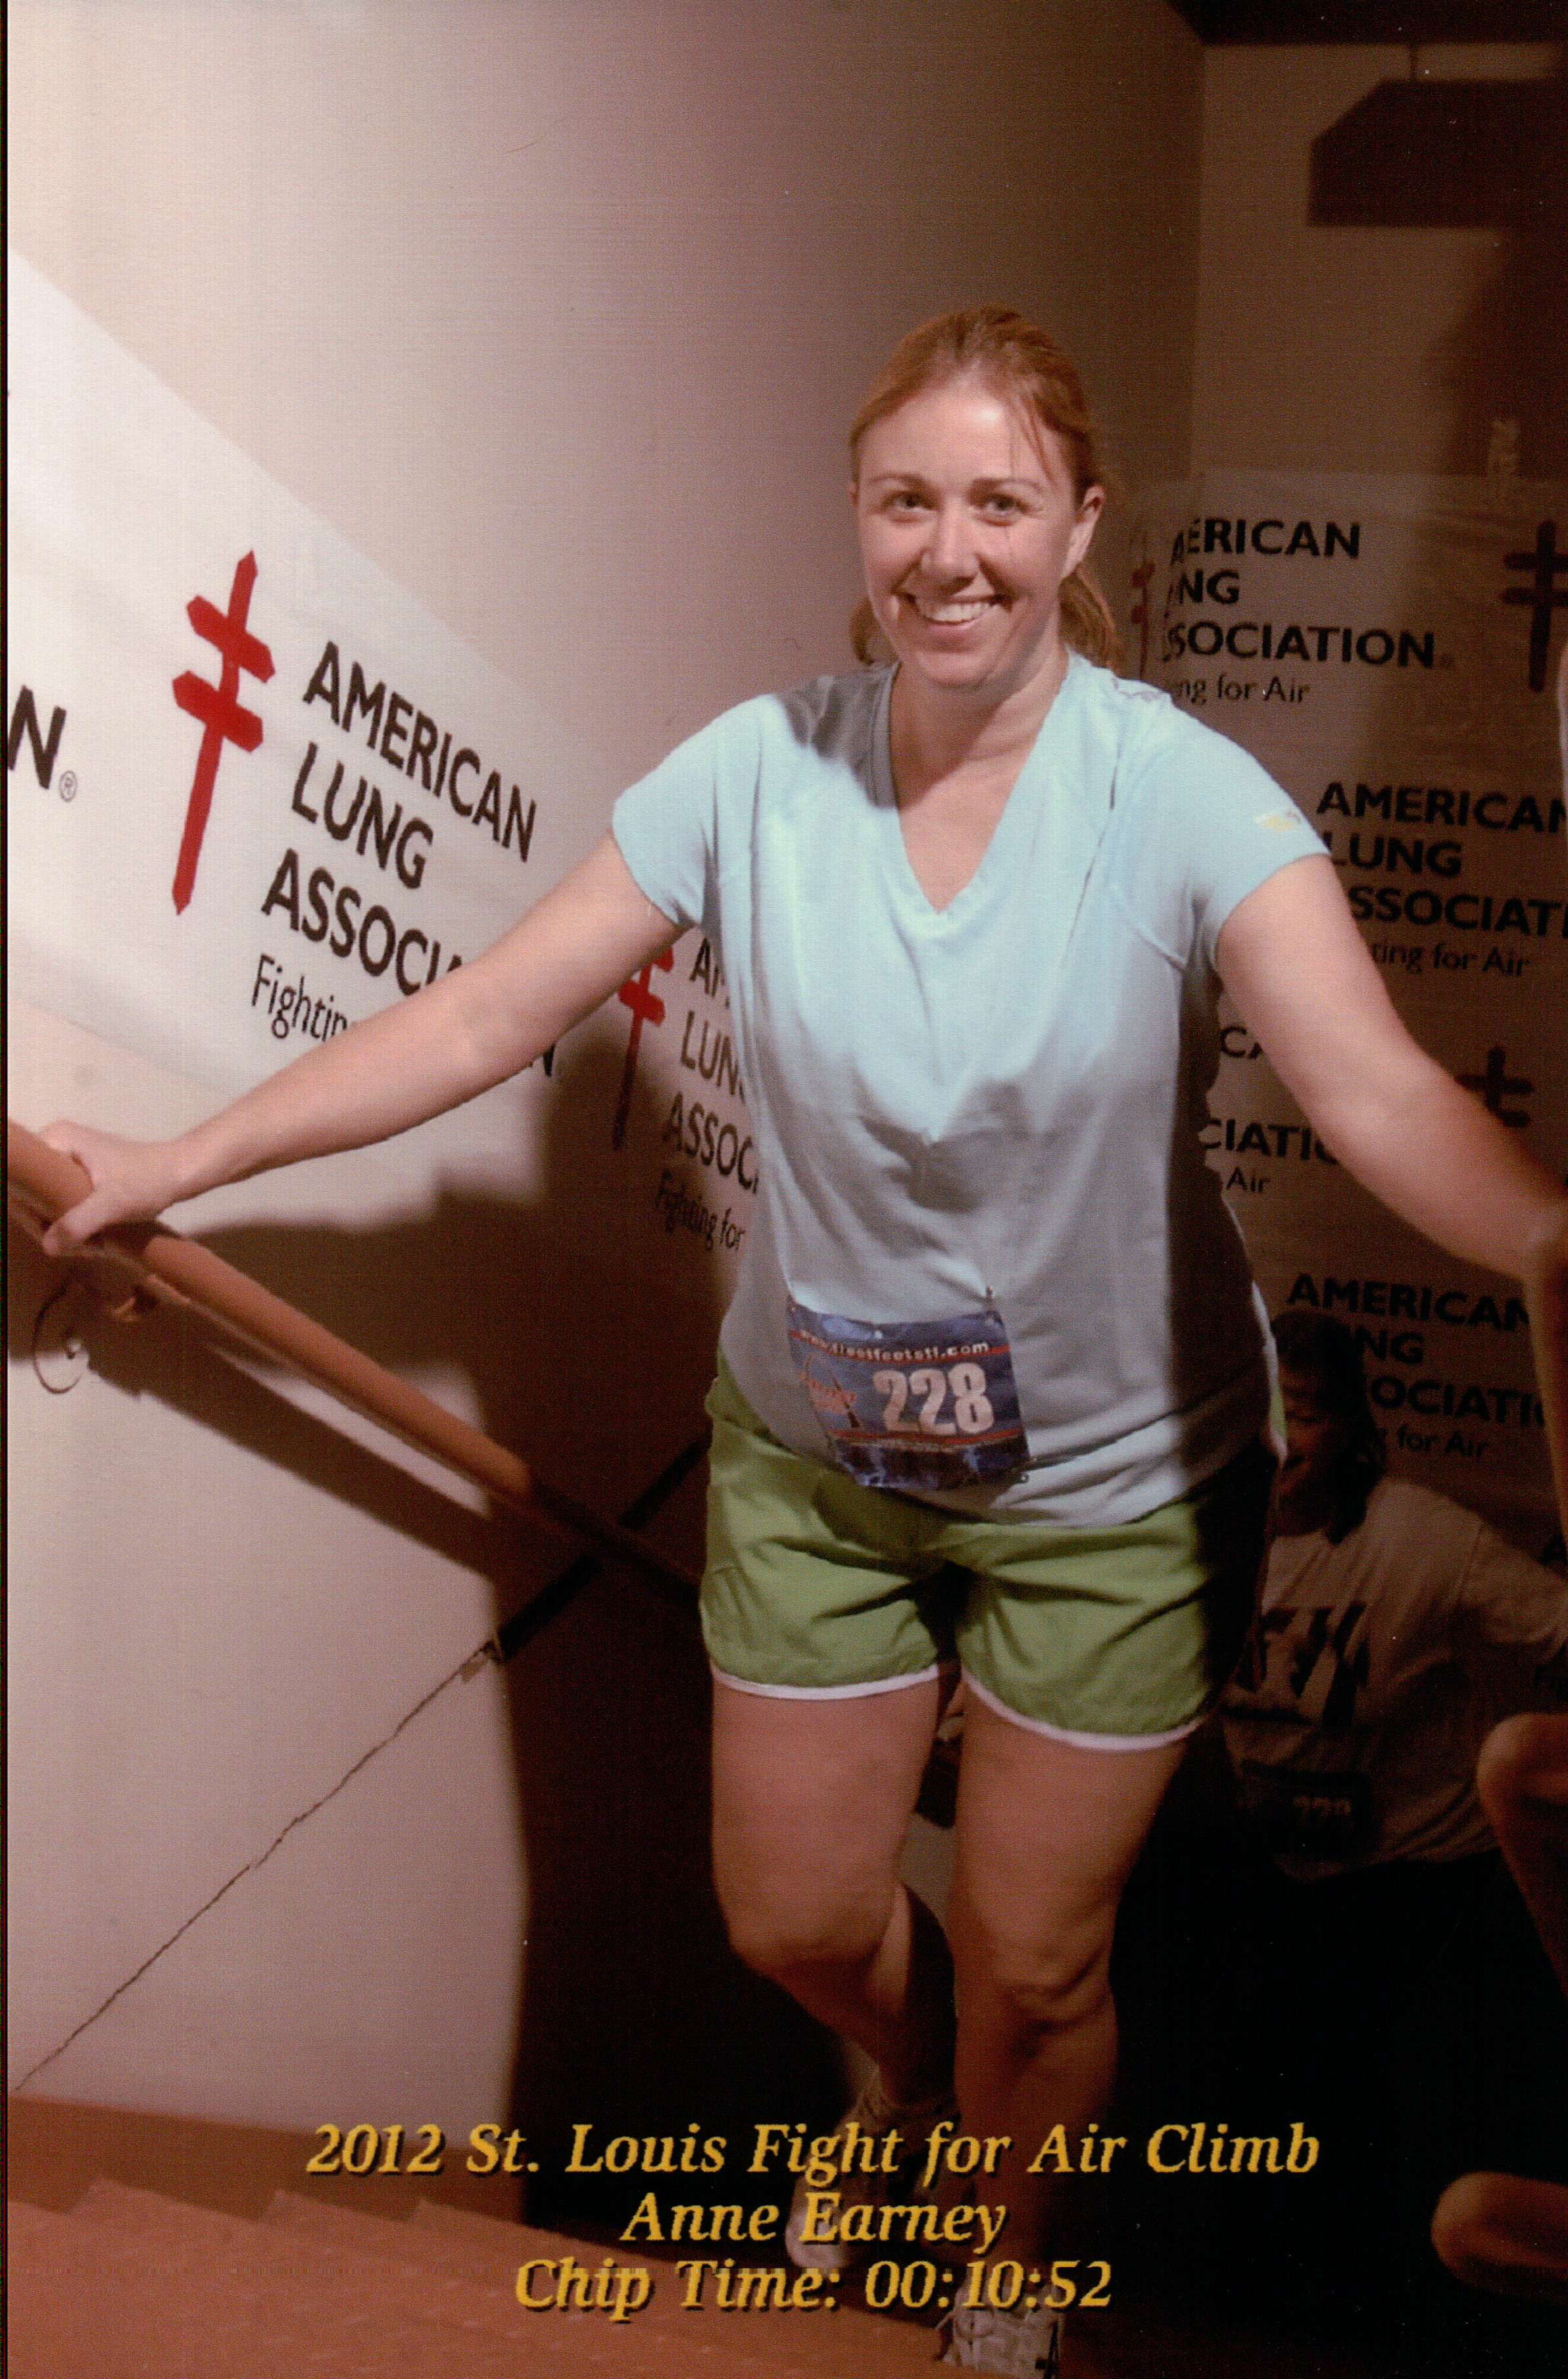 Me at the 2012 Master the Met. That's a fake smile; I wasn't happy at that point. Climbing stairs is tough.